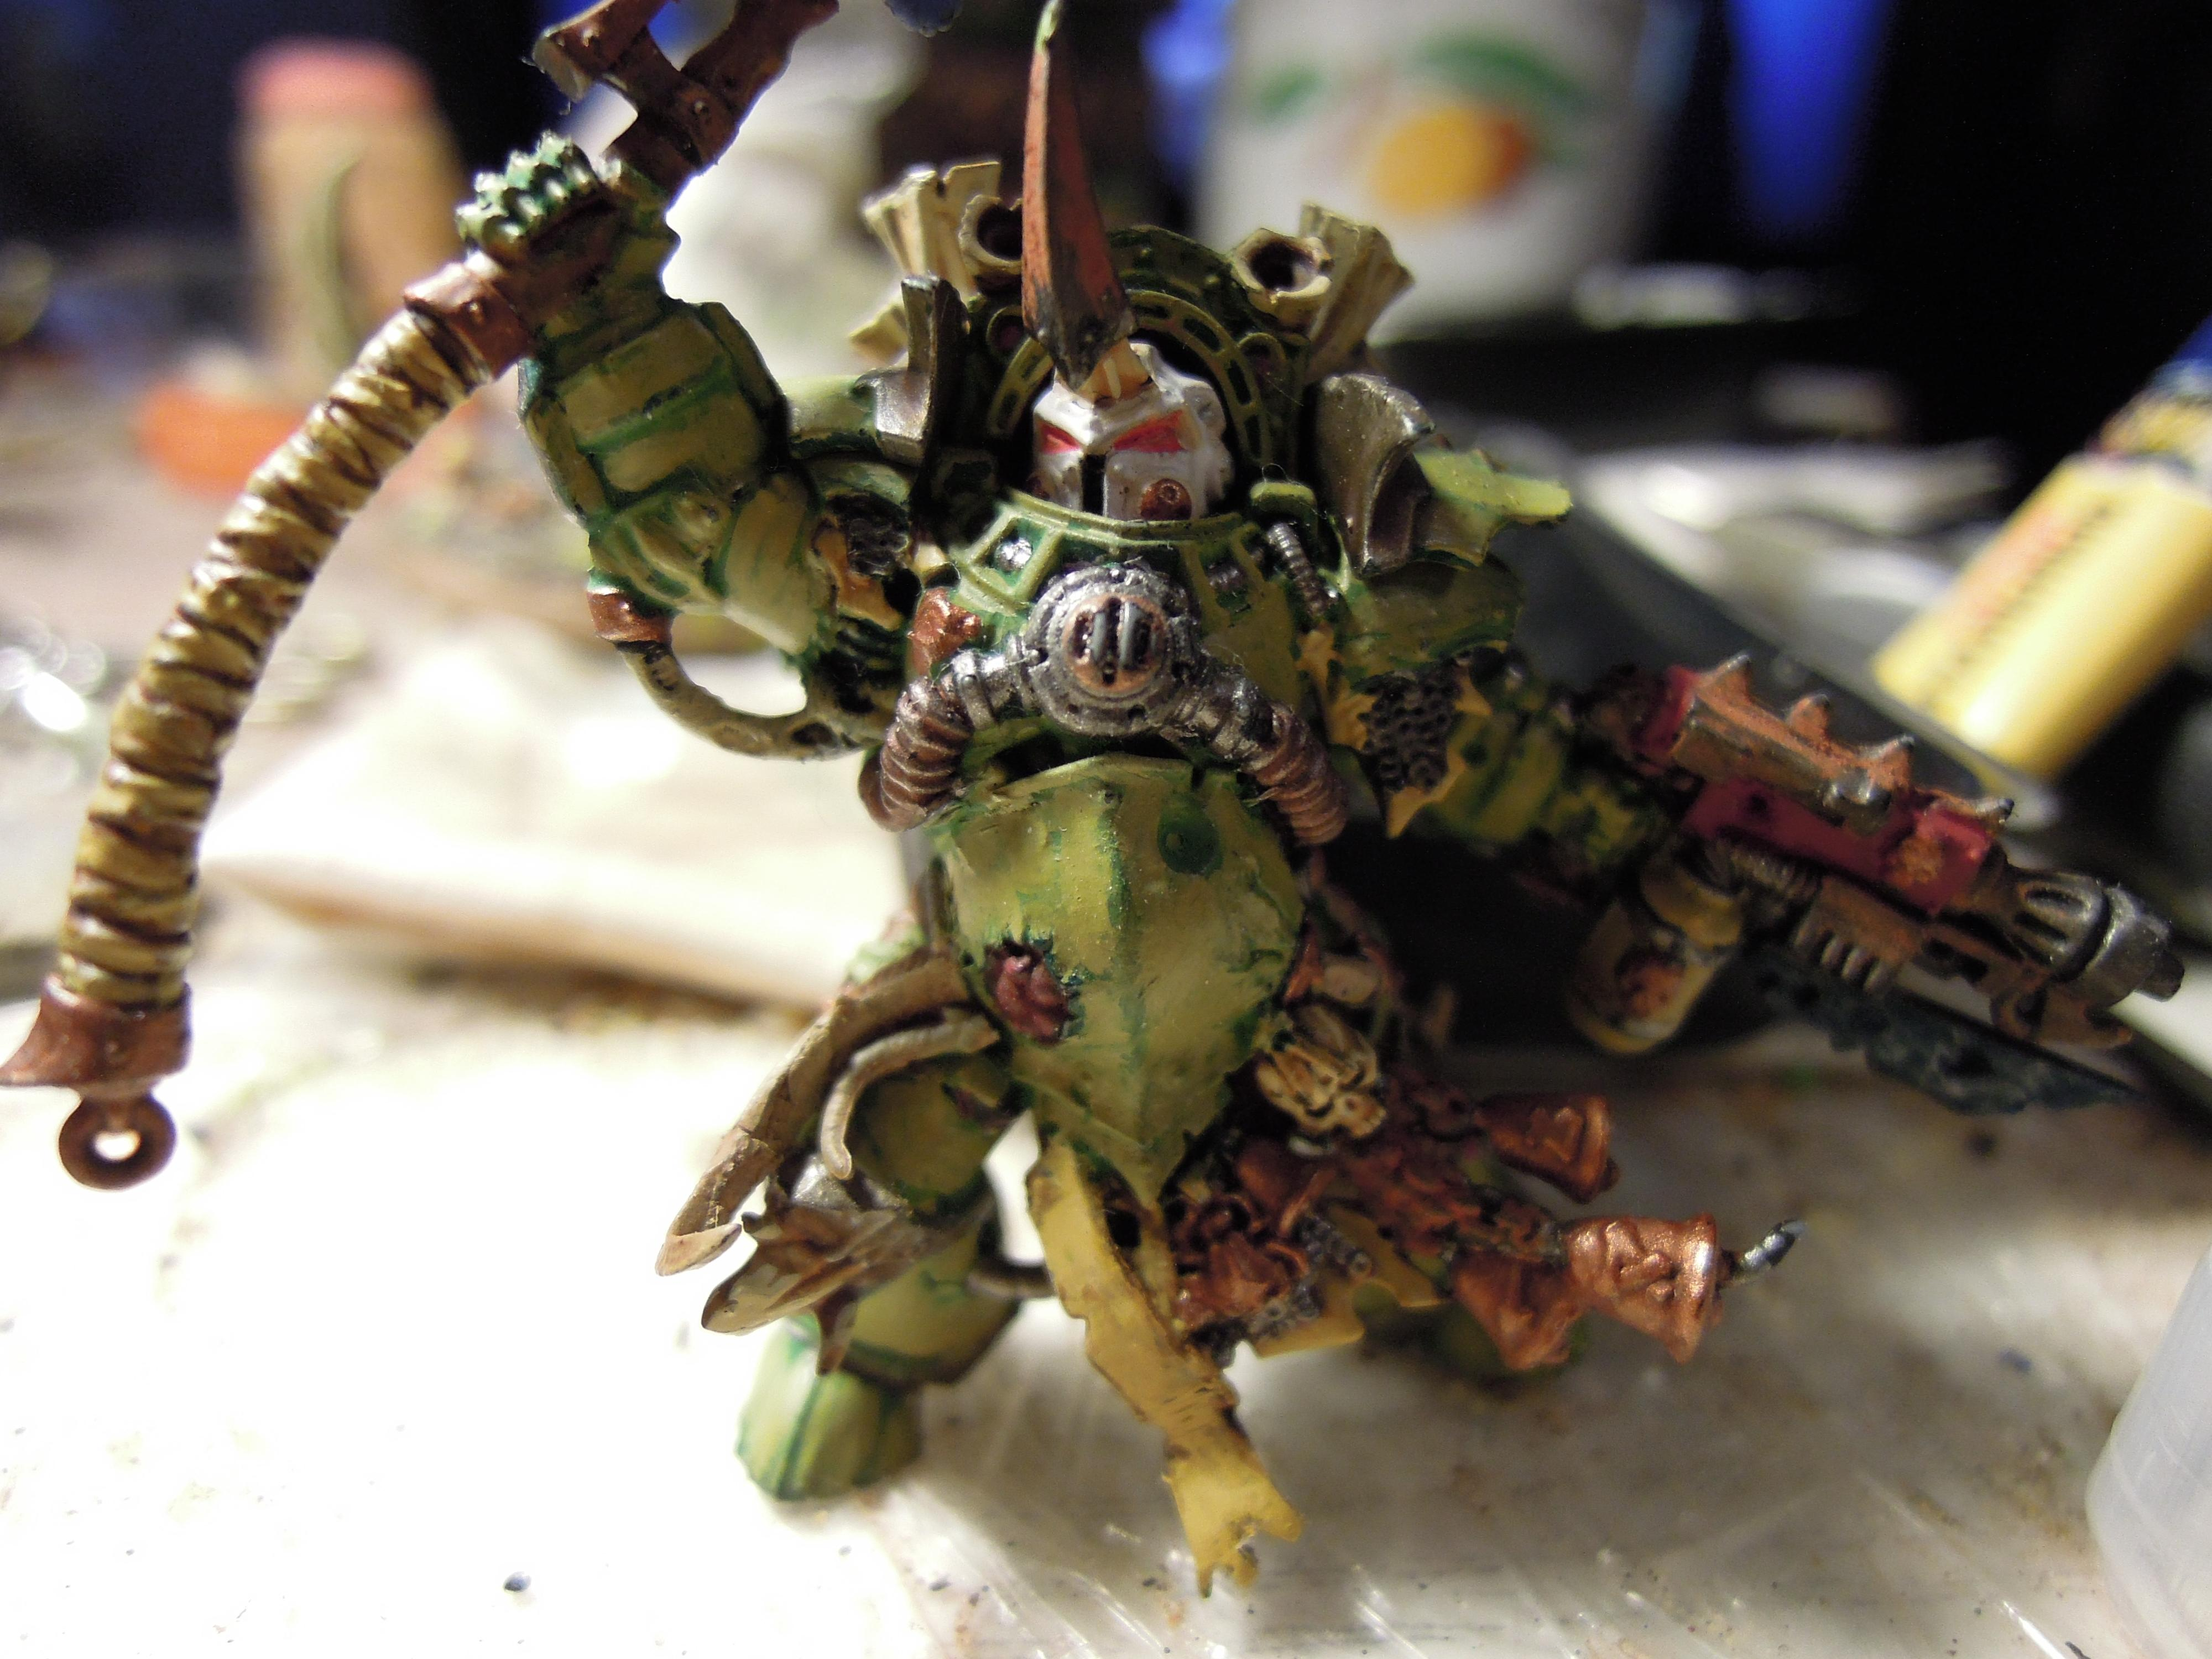 Blight, Cataphract, Chaos, Chaos Space Marines, Combi Weapon, Conversion, Death Guard, Decay, Destroyer Hive, Disease, Heretic Astartes, Nurgle, Pestilence, Plague, Plague Marines, Rot, Scythe, Terminator Armor, Traitor Legions, Typhus, Warhammer 40,000, Work In Progress